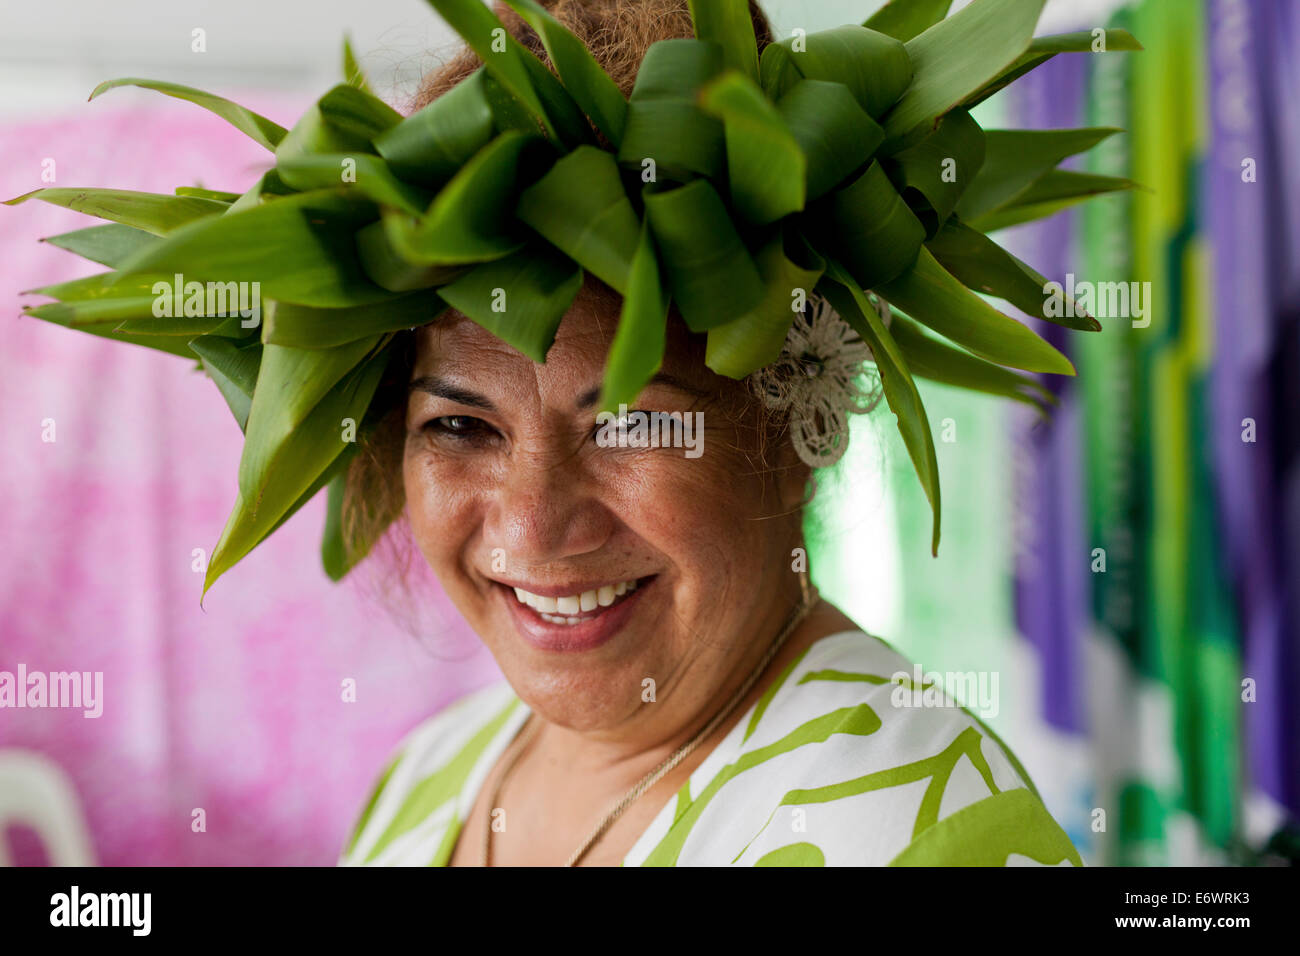 Woman wearing a headdress at the Pasifika Festival in Auckland, North Island, New Zealand - Stock Image